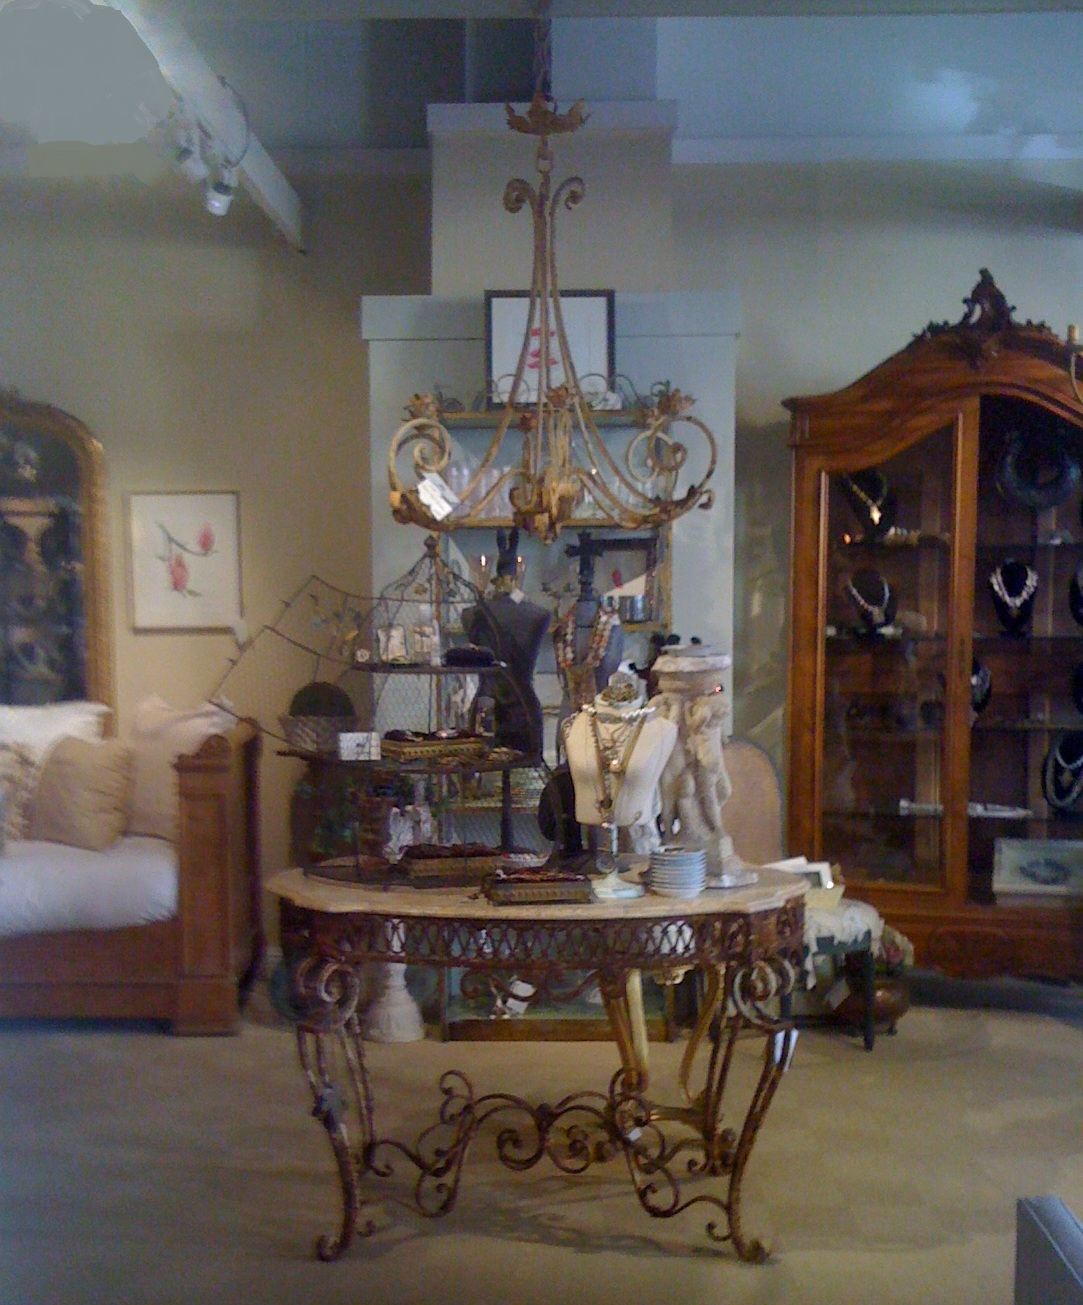 Antique stores marin 365 things to do marin for Home decor 365